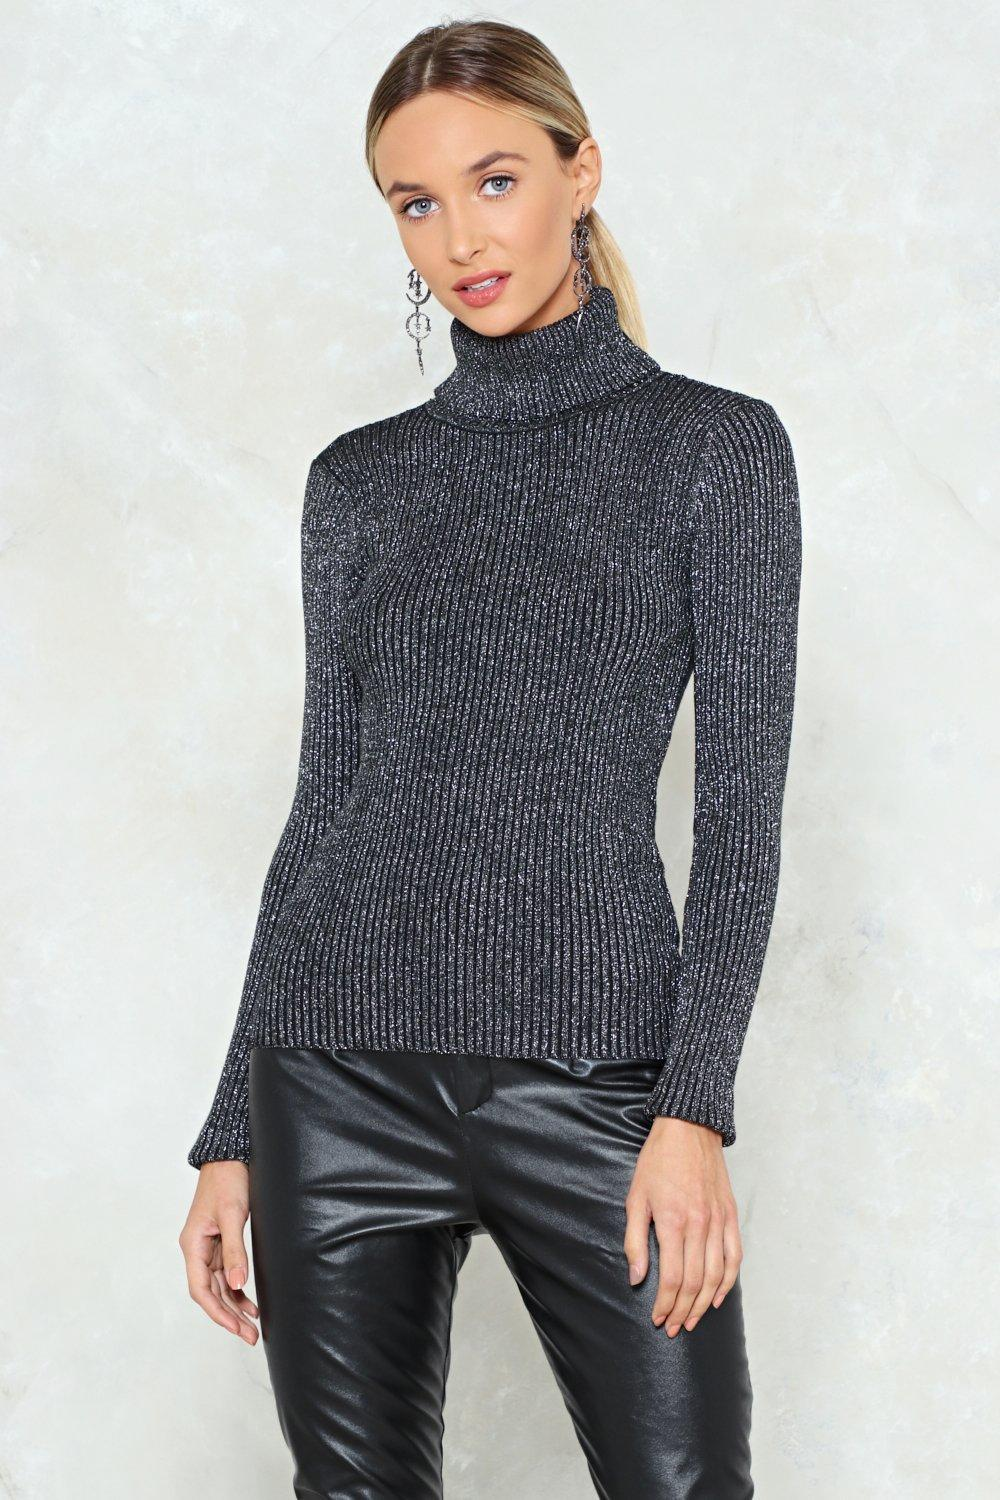 You Can Do Knit Turtleneck Sweater | Shop Clothes at Nasty Gal!